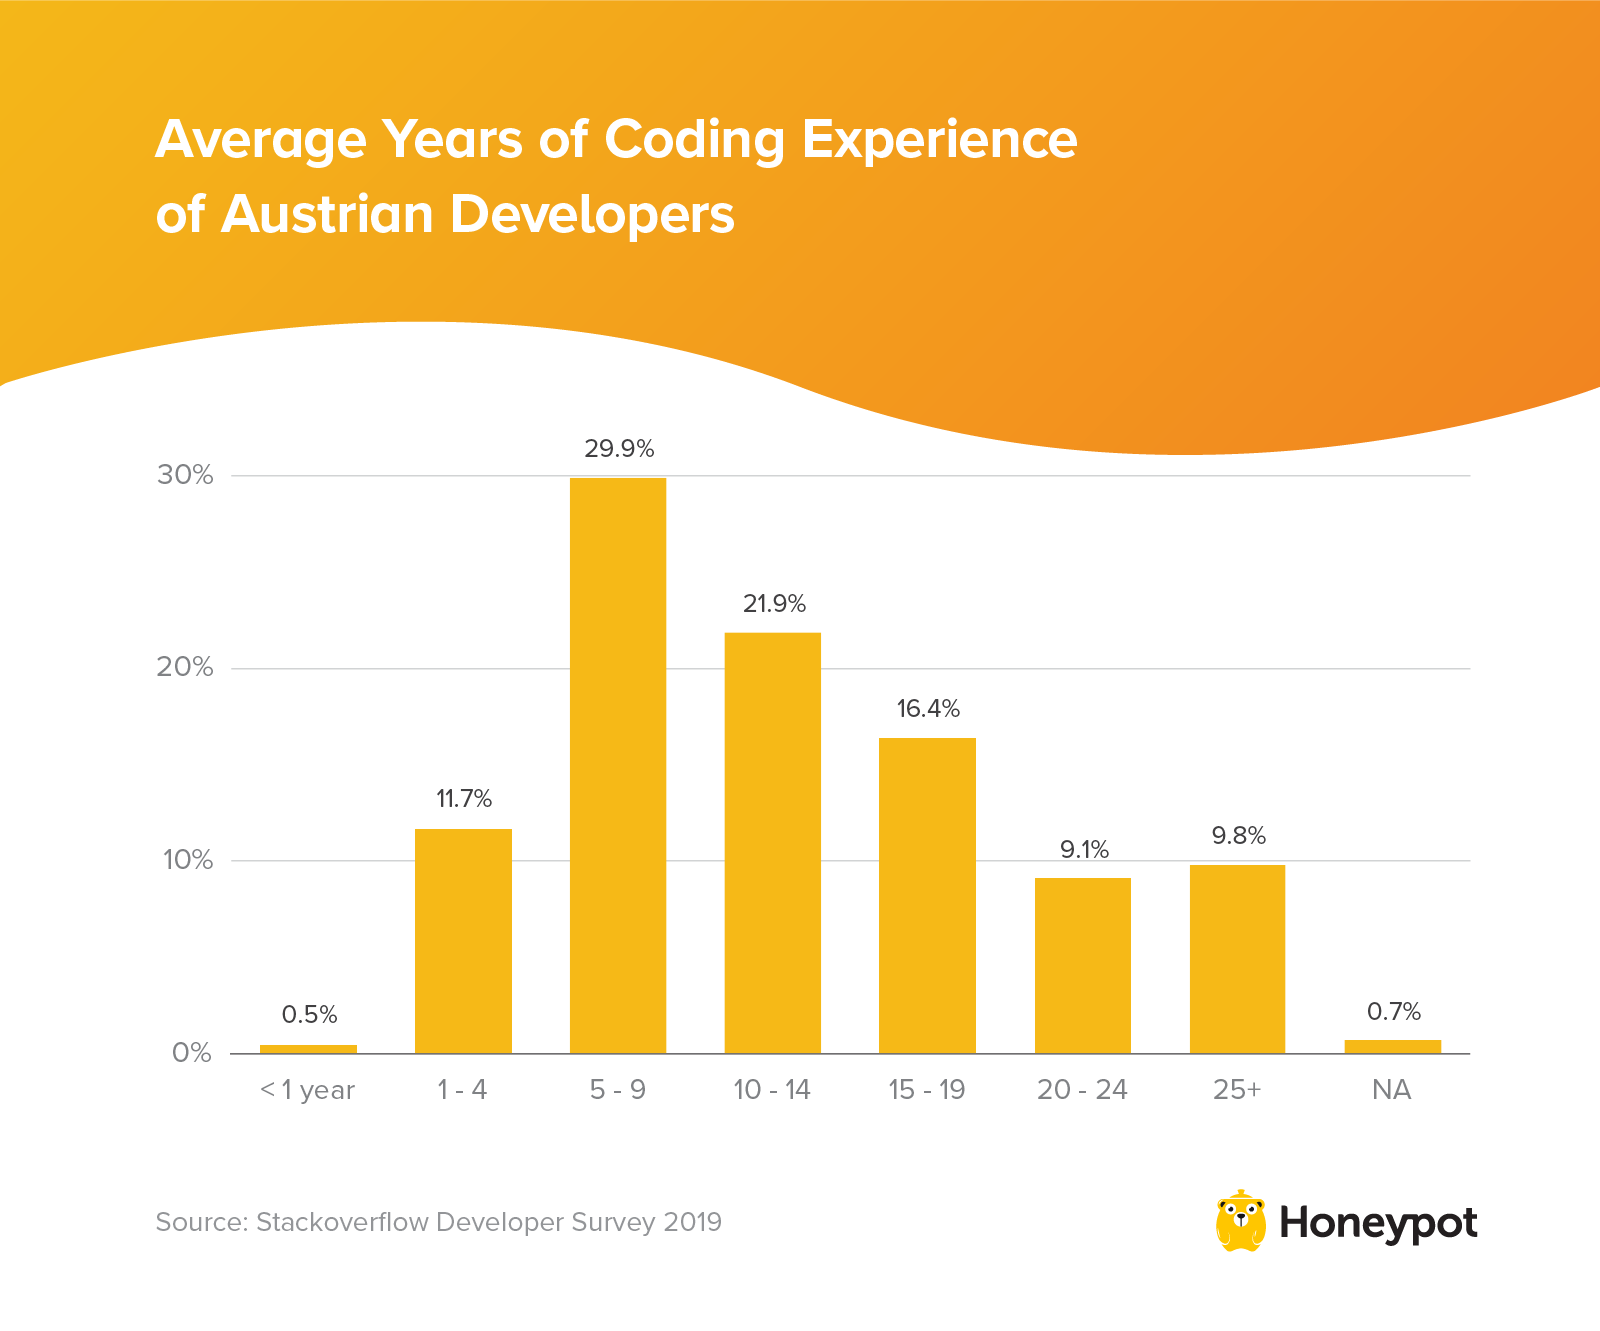 Average years of coding experience of Austrian developers